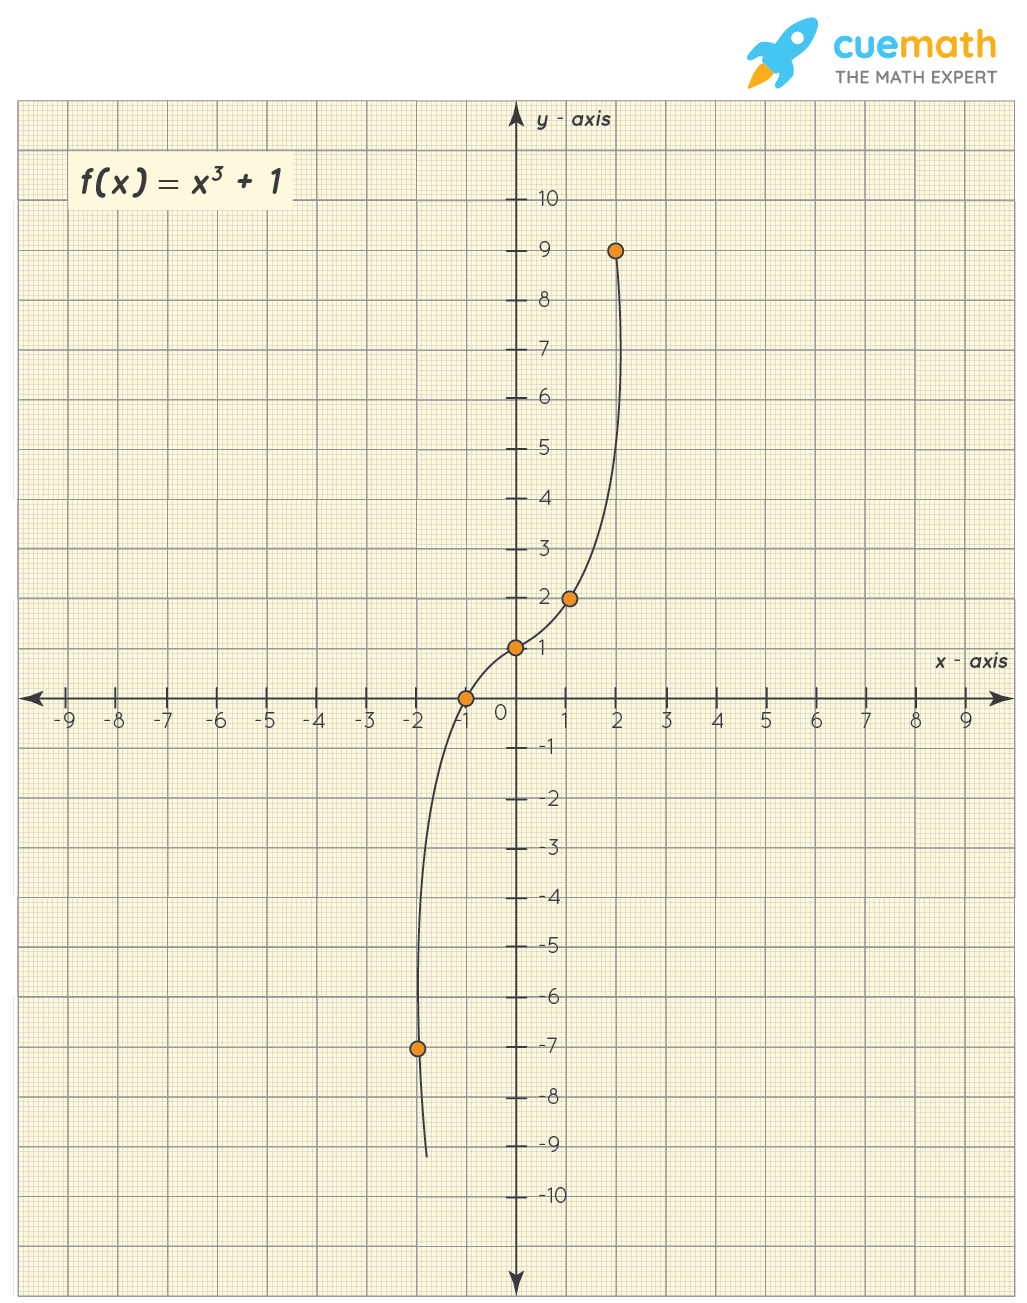 Graph of x^3 + 1